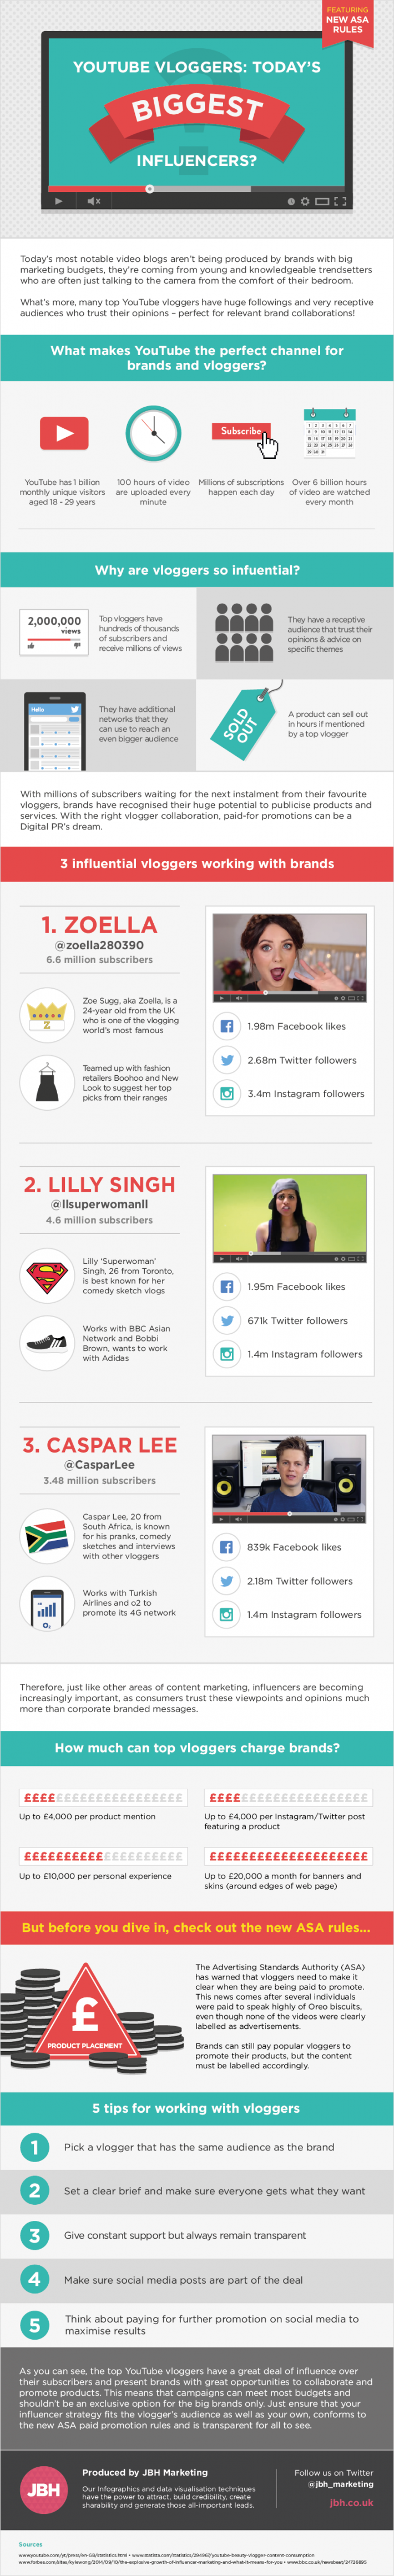 YouTube Vloggers: Today's Biggest #SocialMedia Influencers? - #infographic